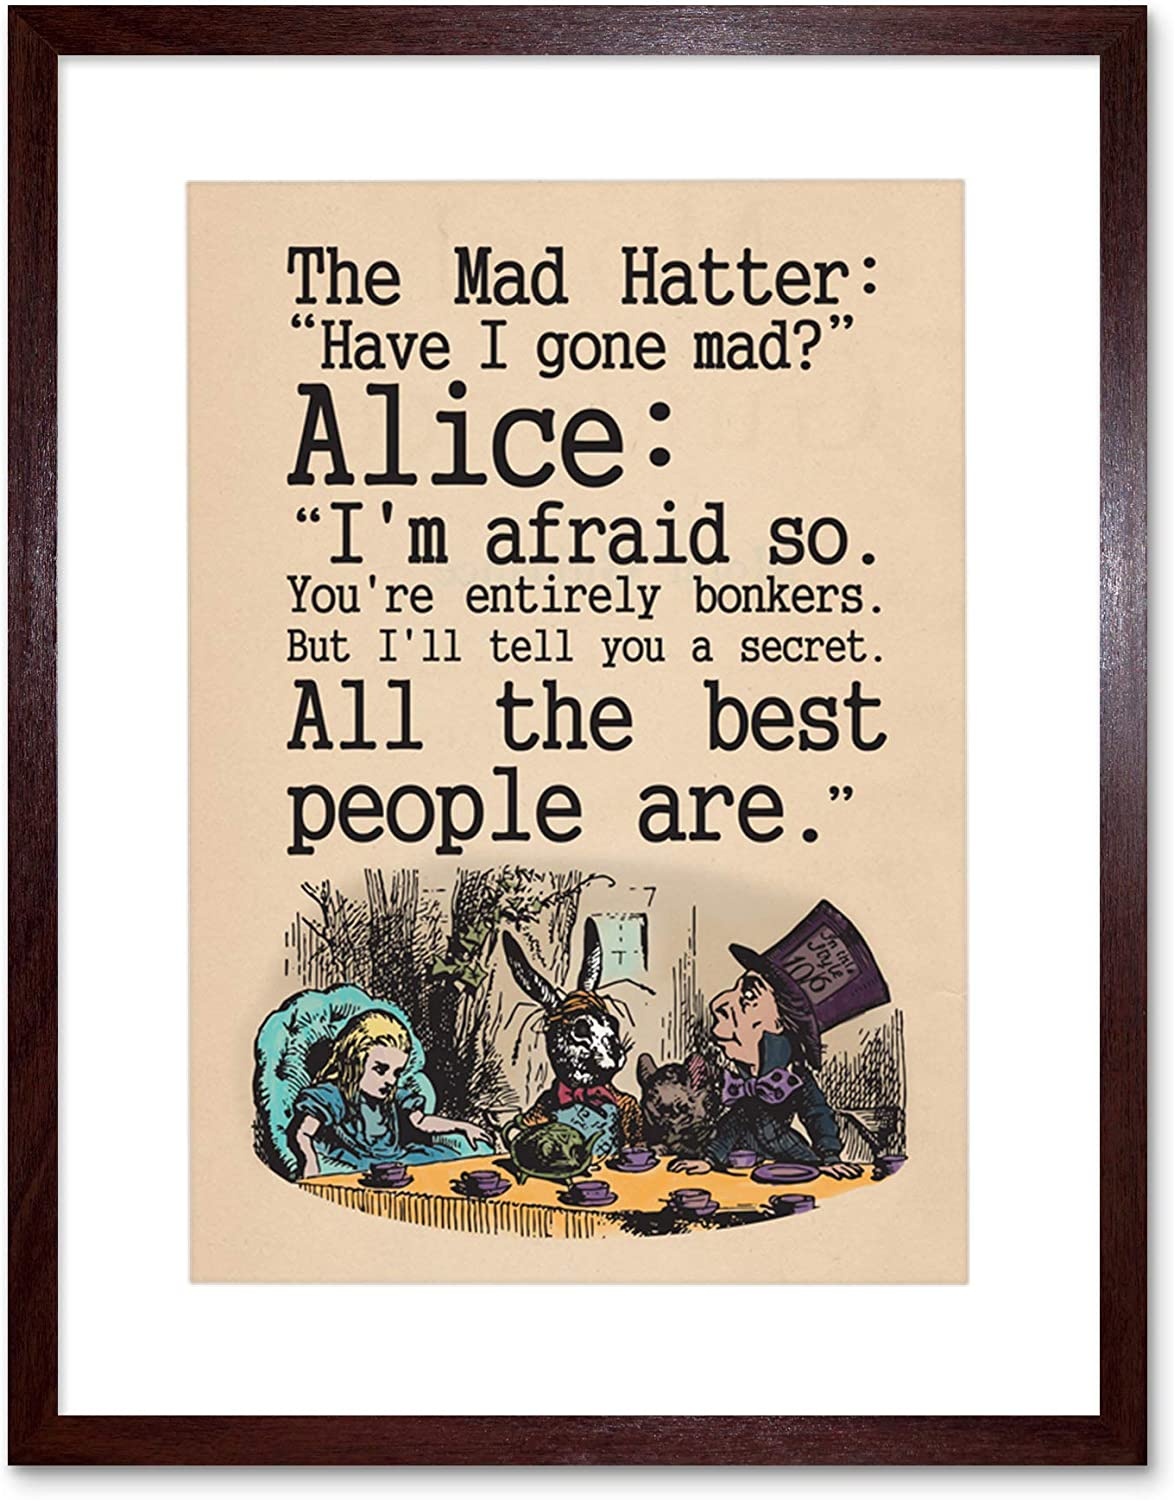 Amazon Com The Art Stop Quote Carroll Book Alice Wonderland Mad Hatter Tea Party Framed Print F97x9832 Posters Prints